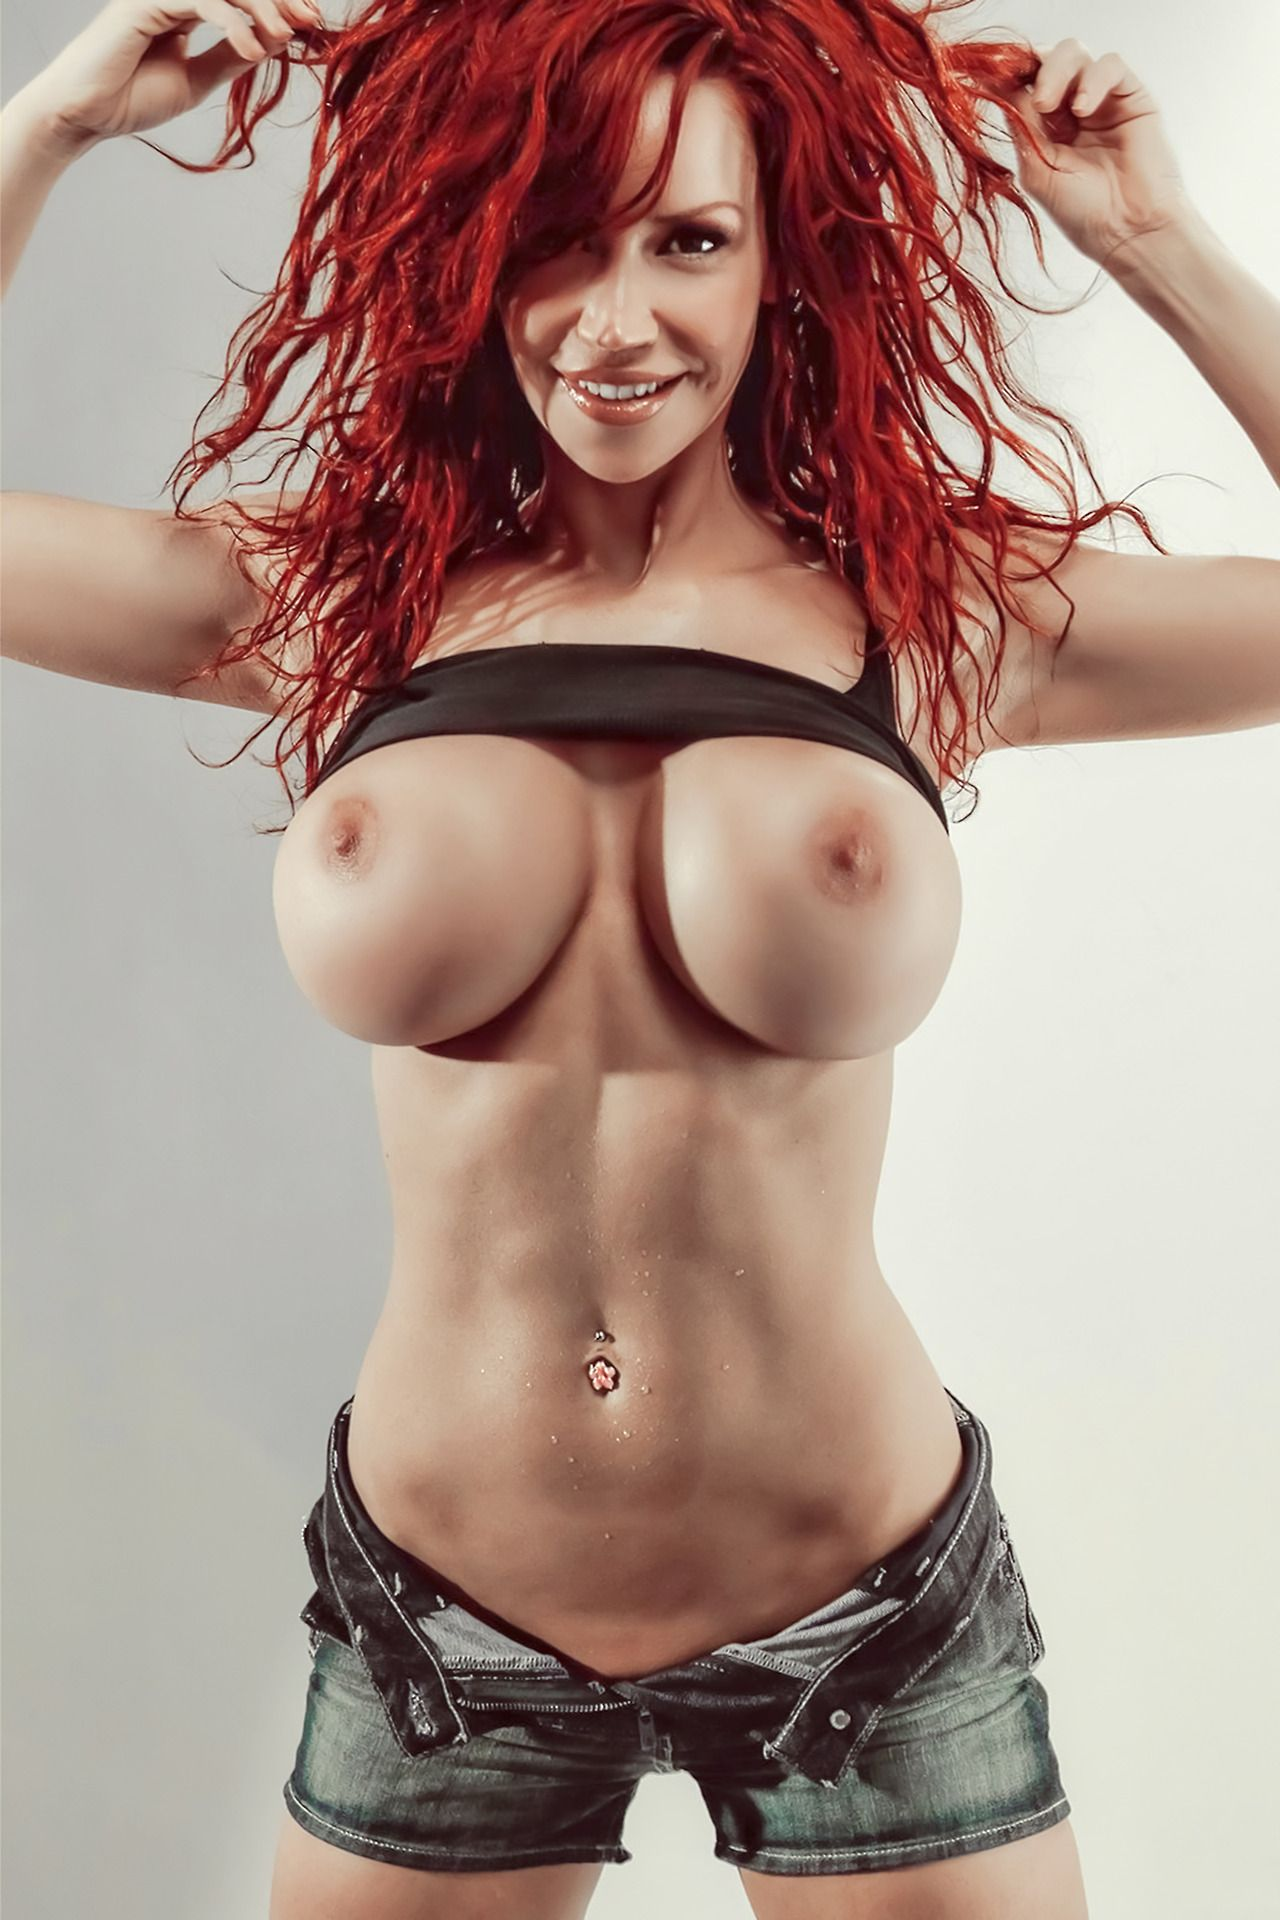 Bianca beauchamp nude pictures-7490